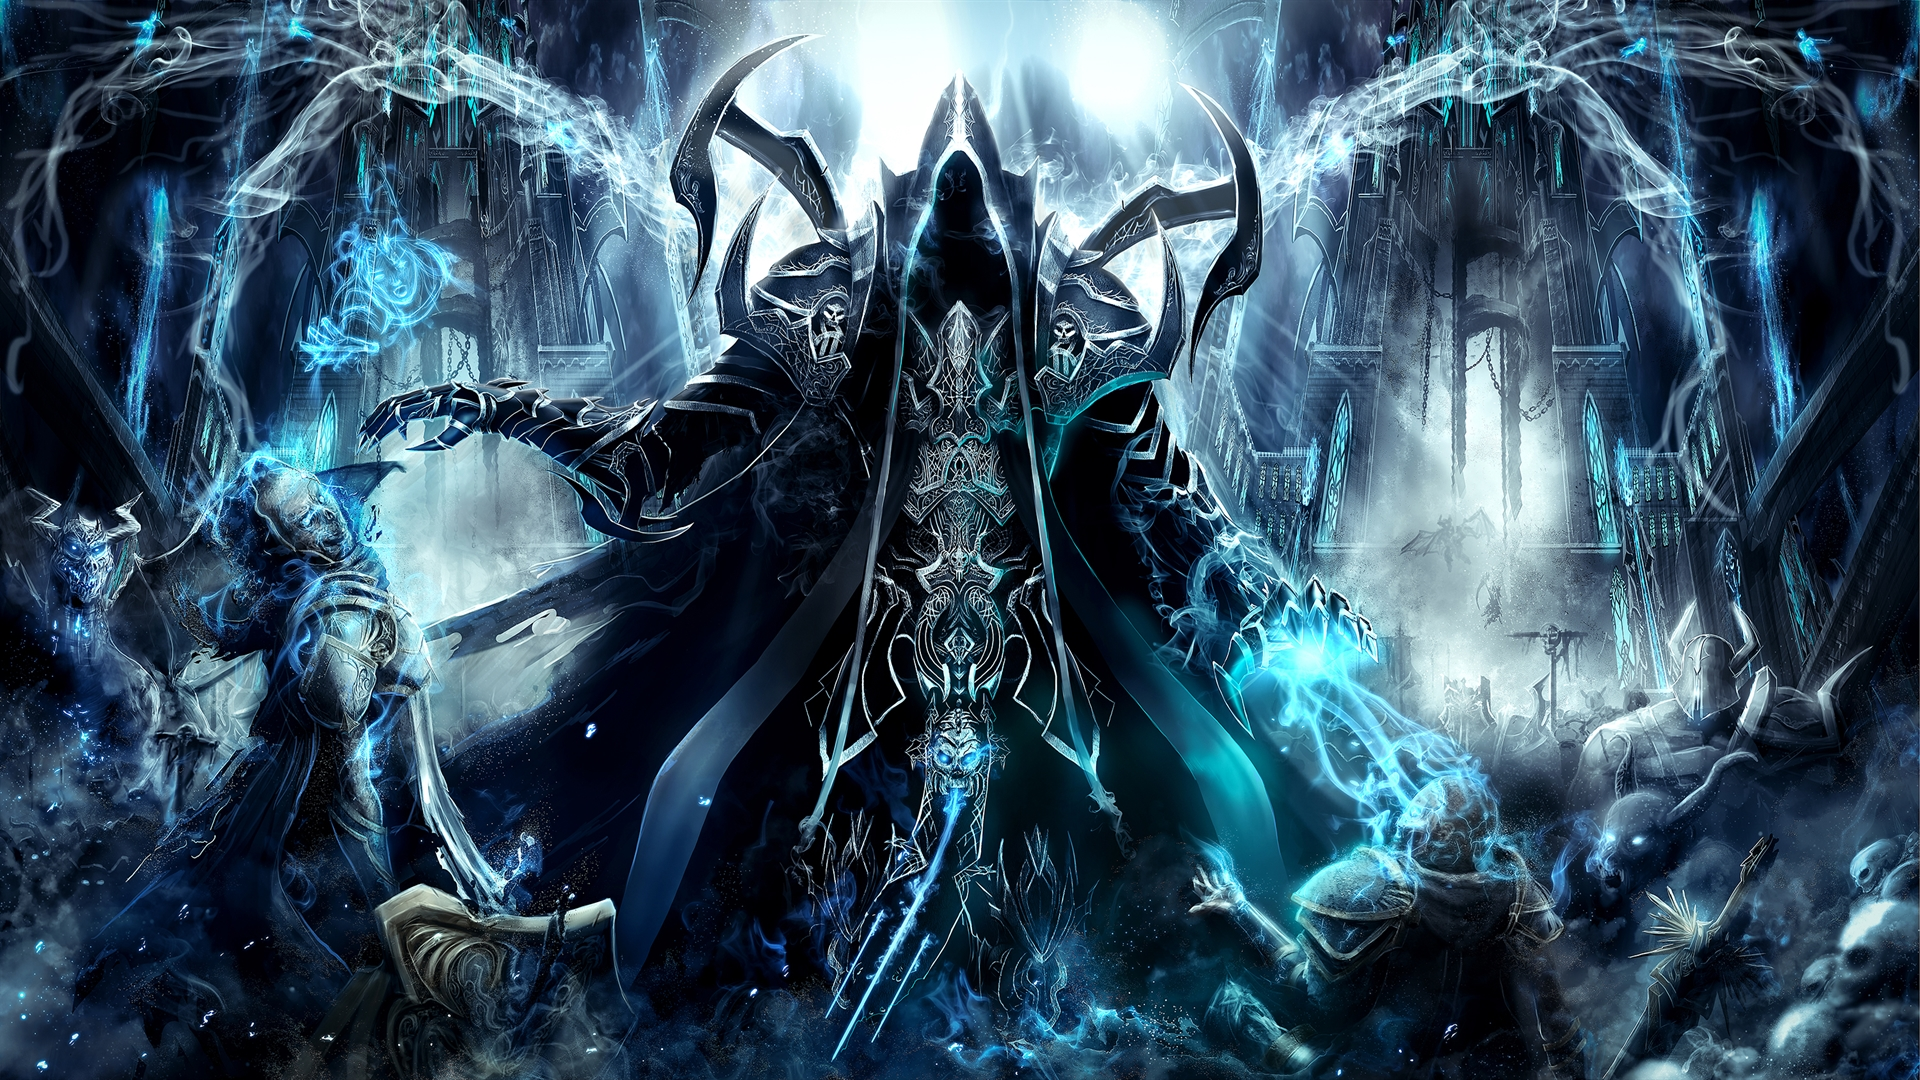 Check Out Diablo III: Reaper of Souls Being Played Via PS